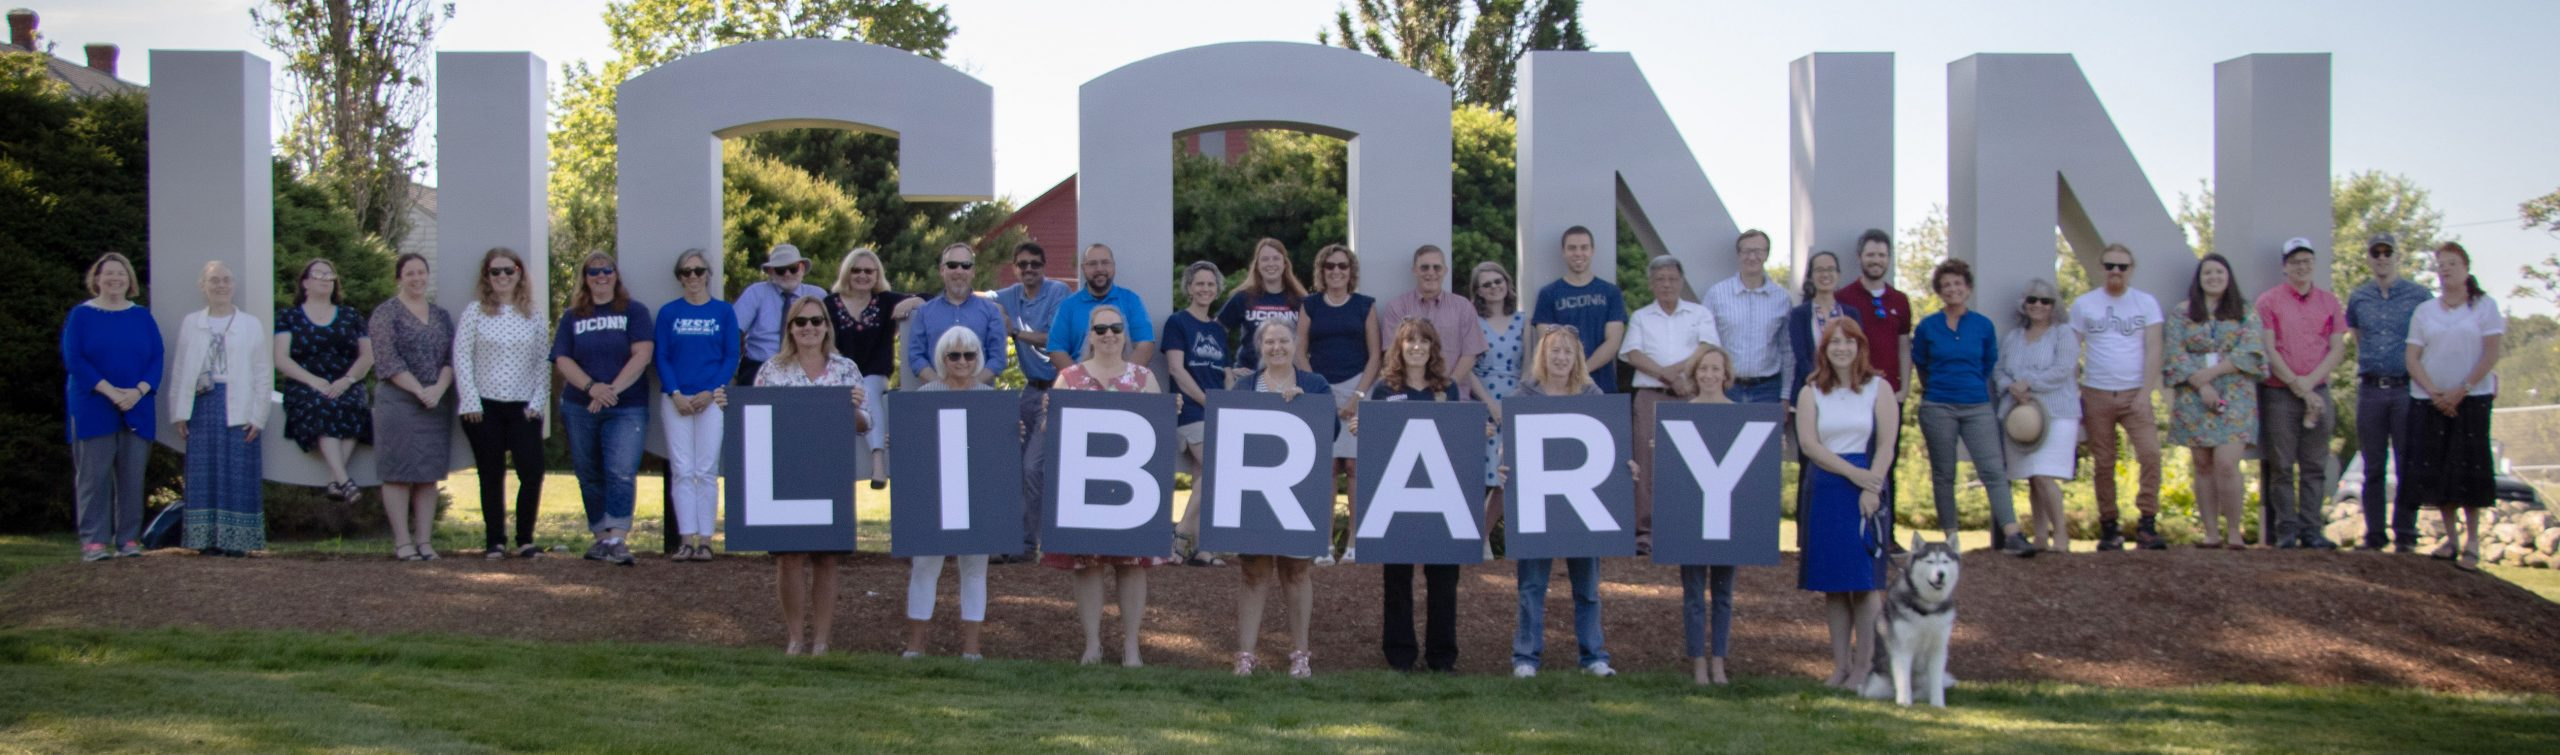 UConn Library staff in front of UConn Sign